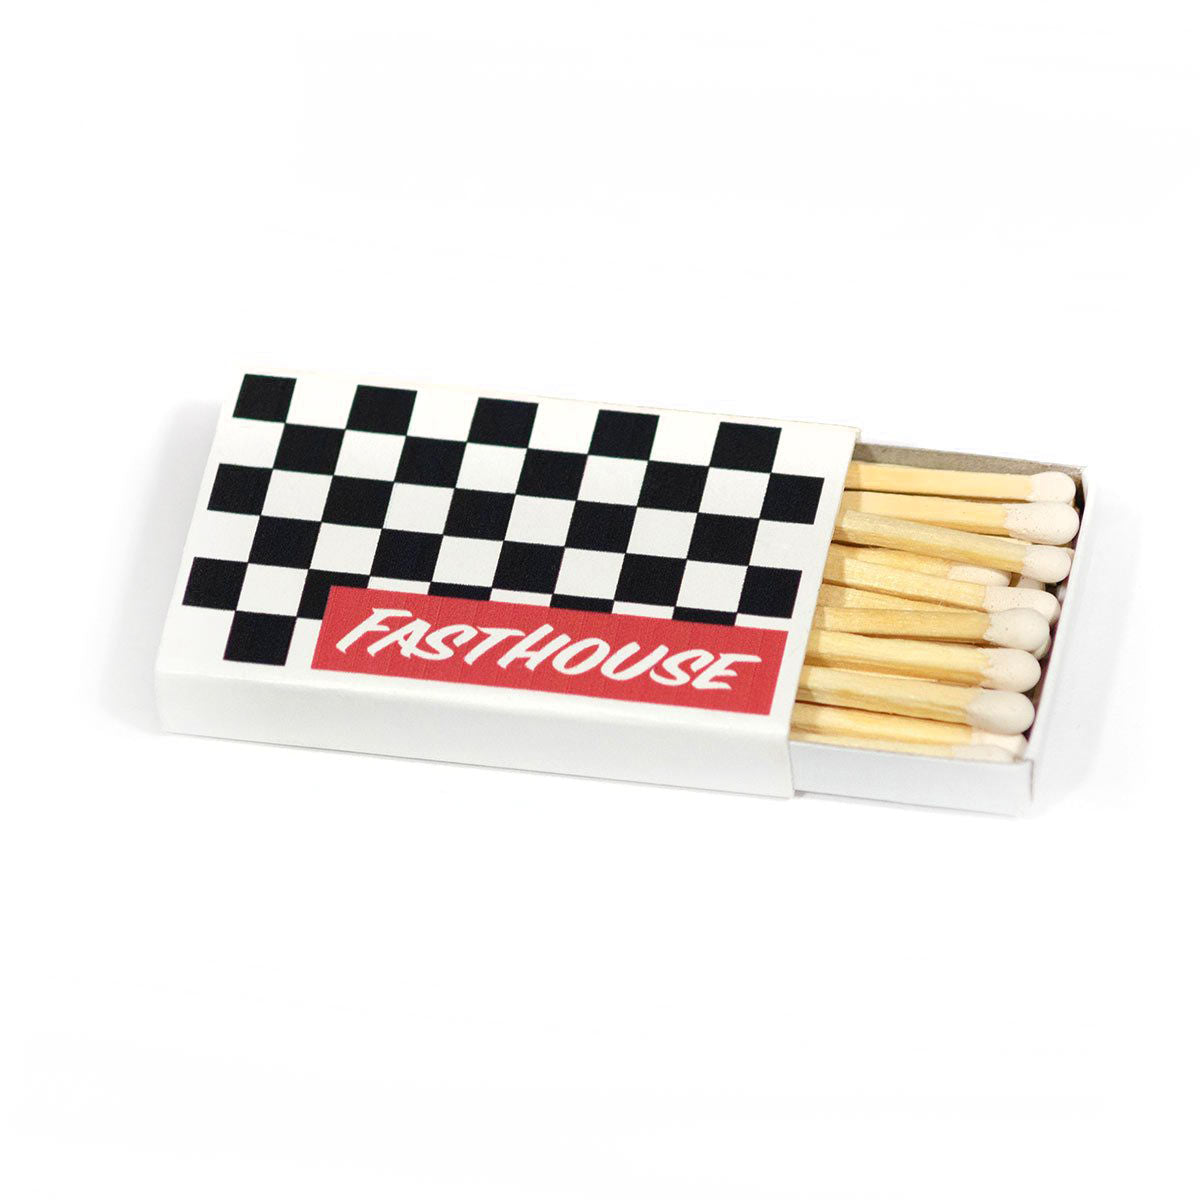 Fasthouse Camp Matches - Checkers